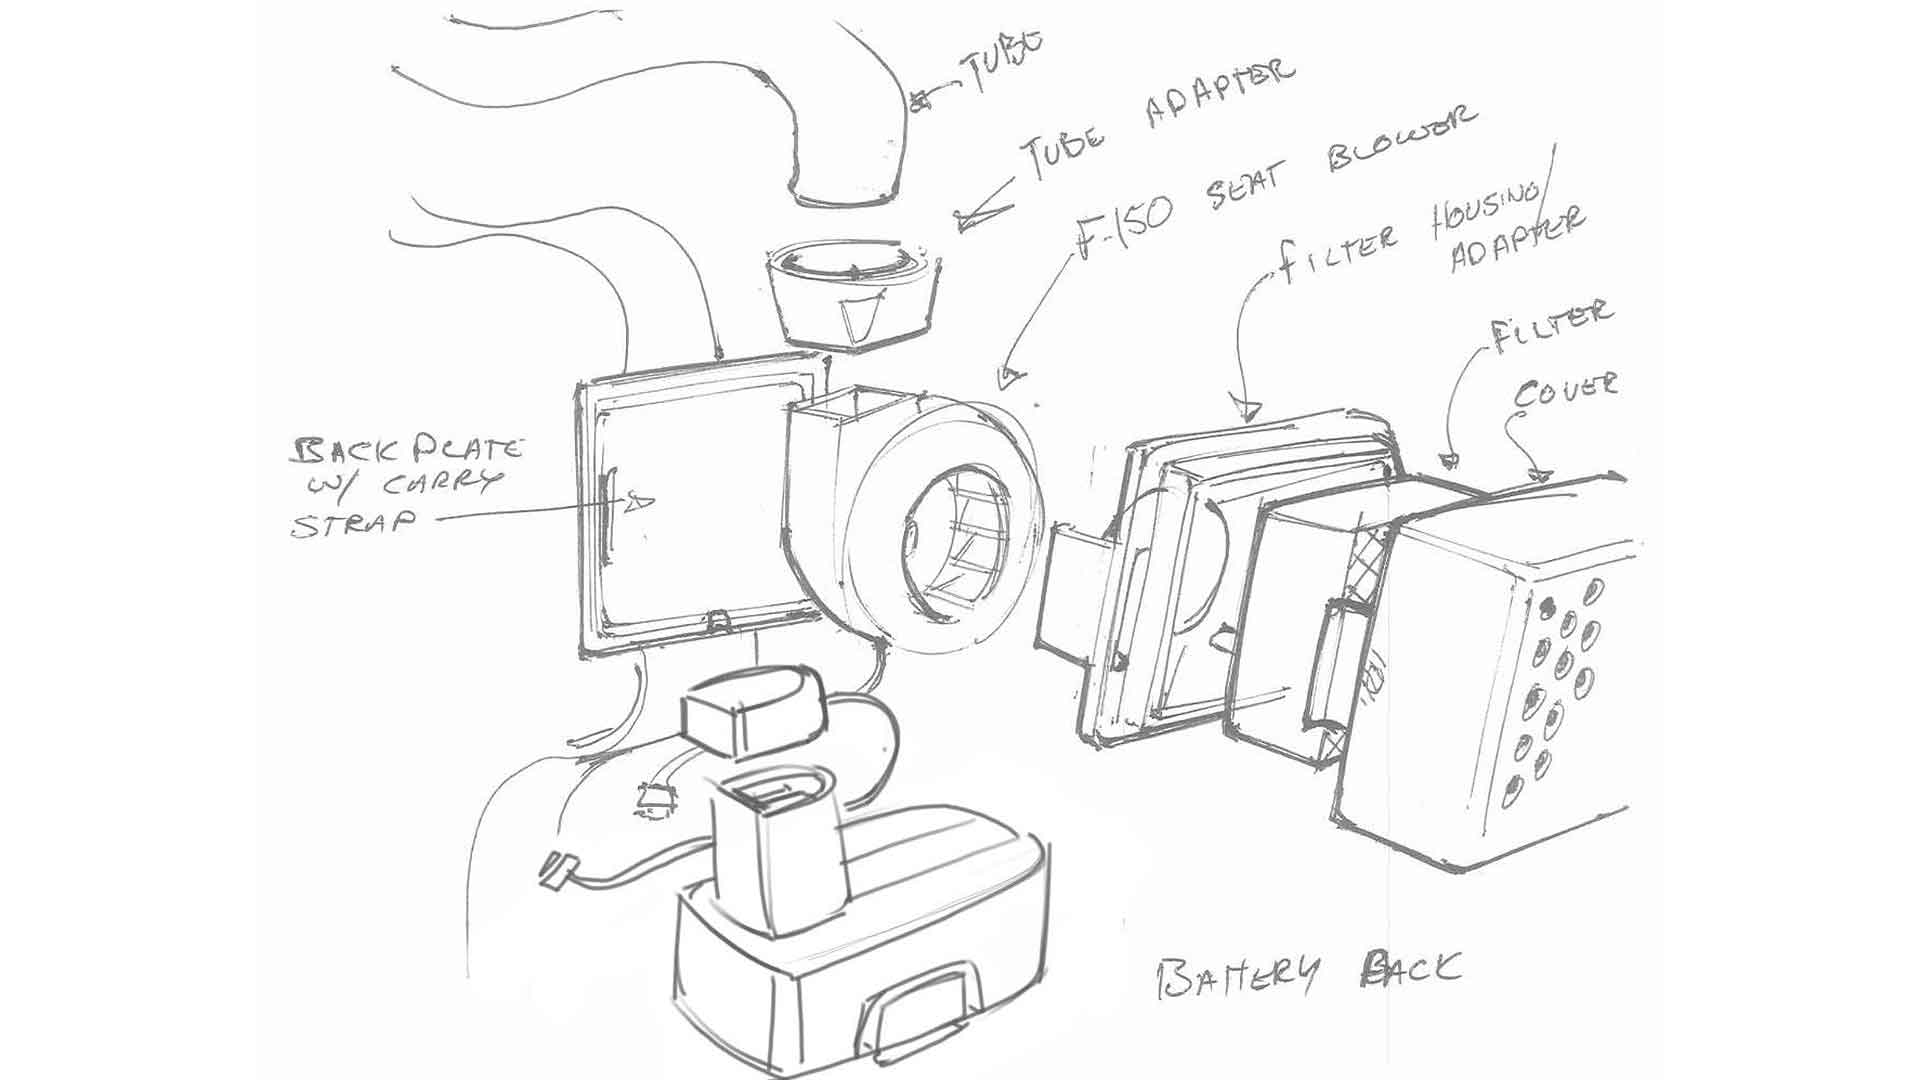 Ford Filtration System design